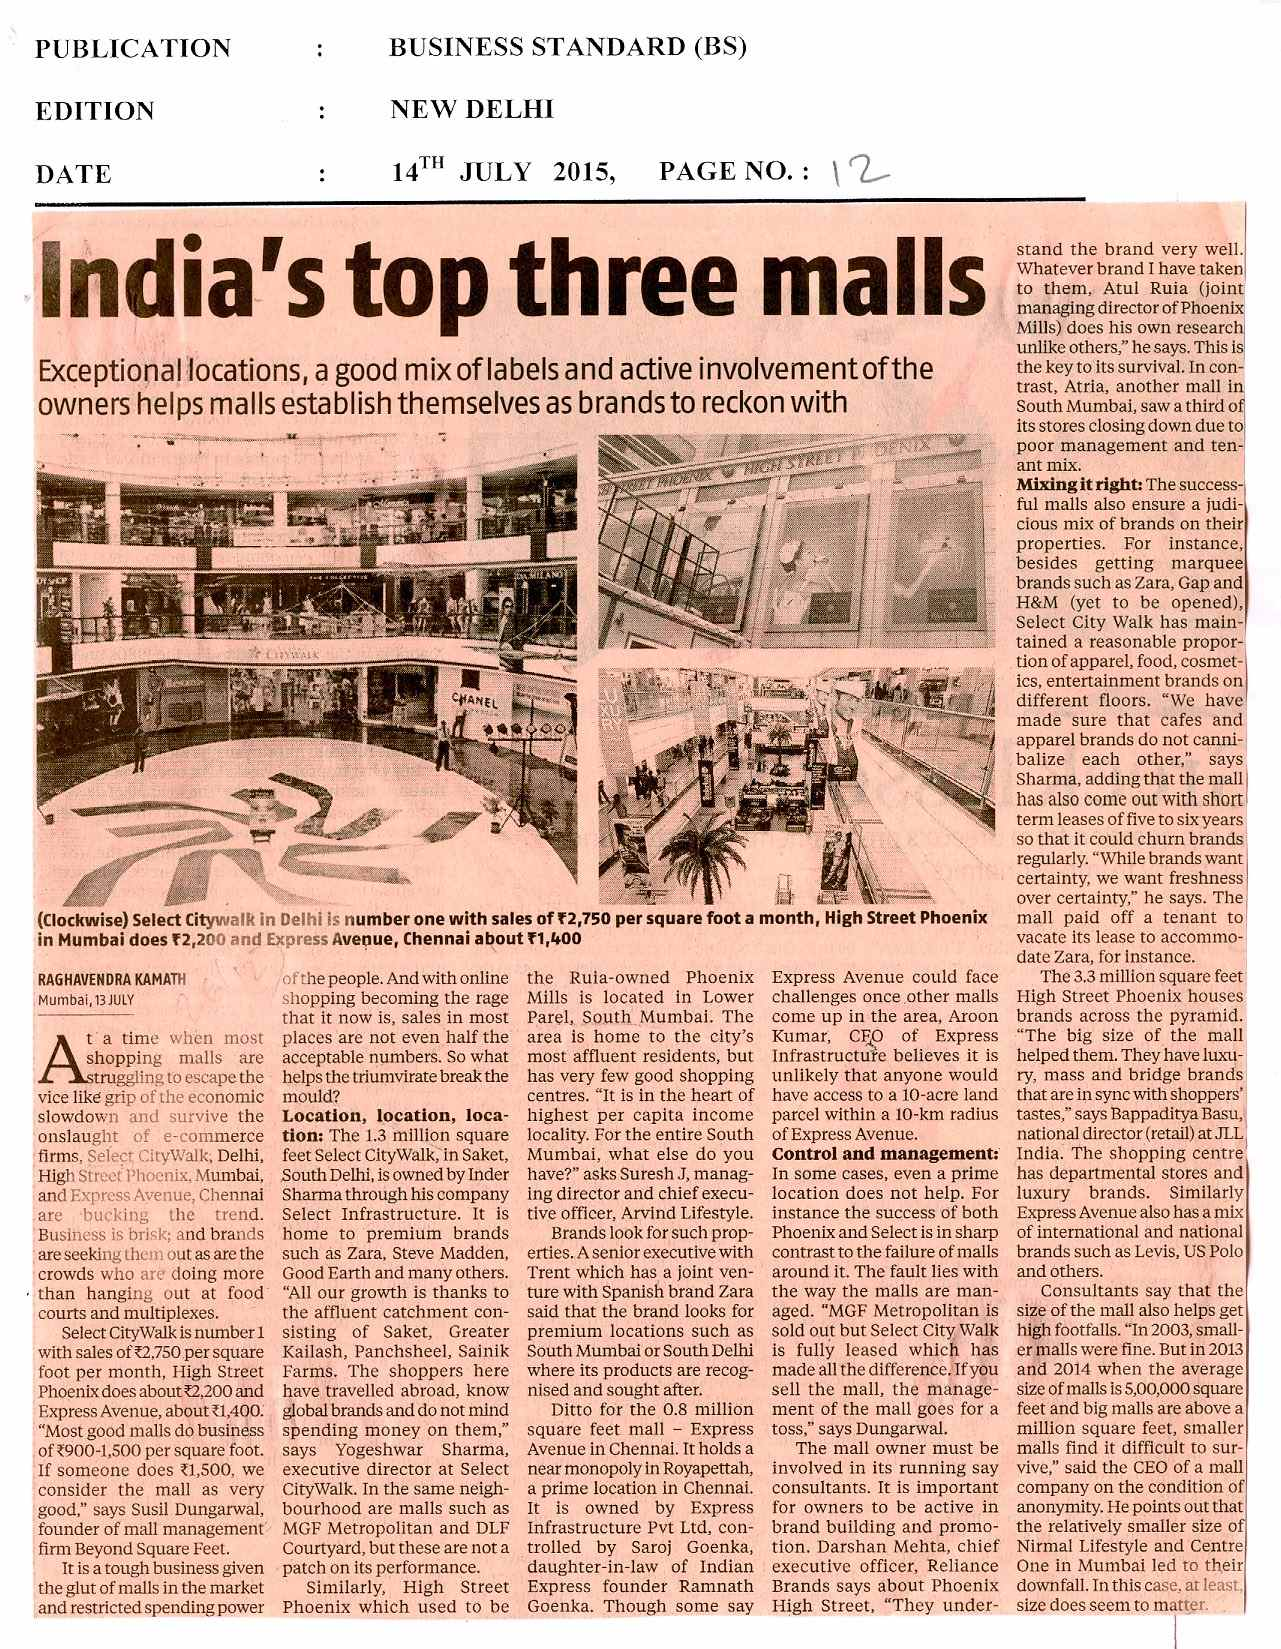 India's top three malls